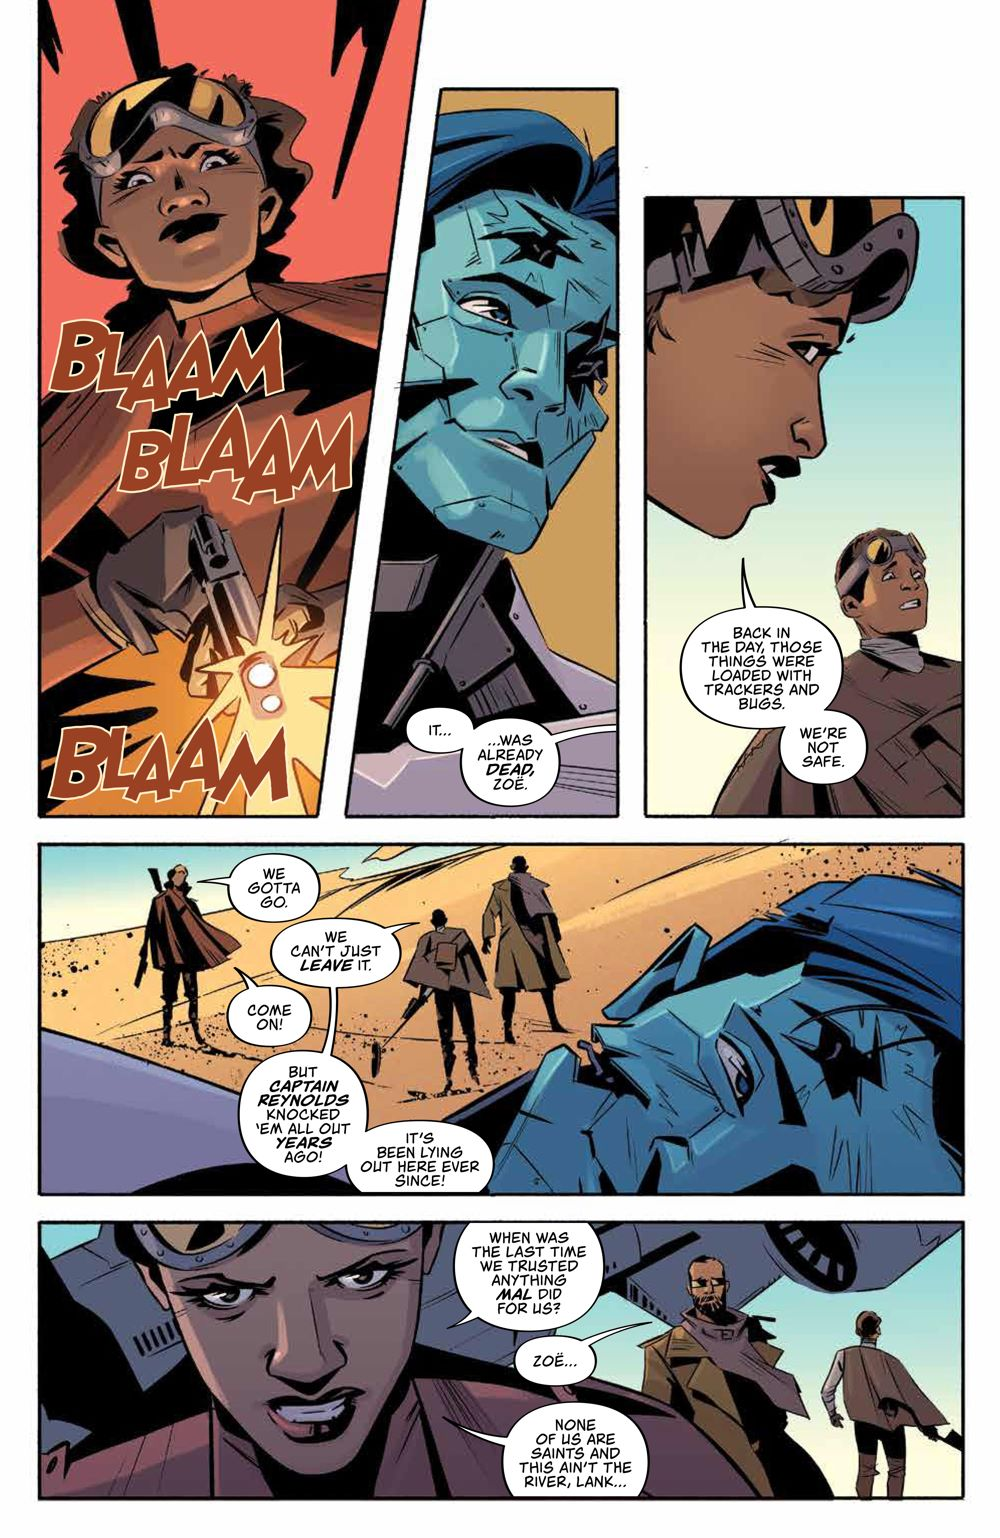 Firefly_ReturnToEarth_v1_HC_PRESS_11 ComicList Previews: FIREFLY RETURN TO THE EARTH THAT WAS VOLUME 1 HC